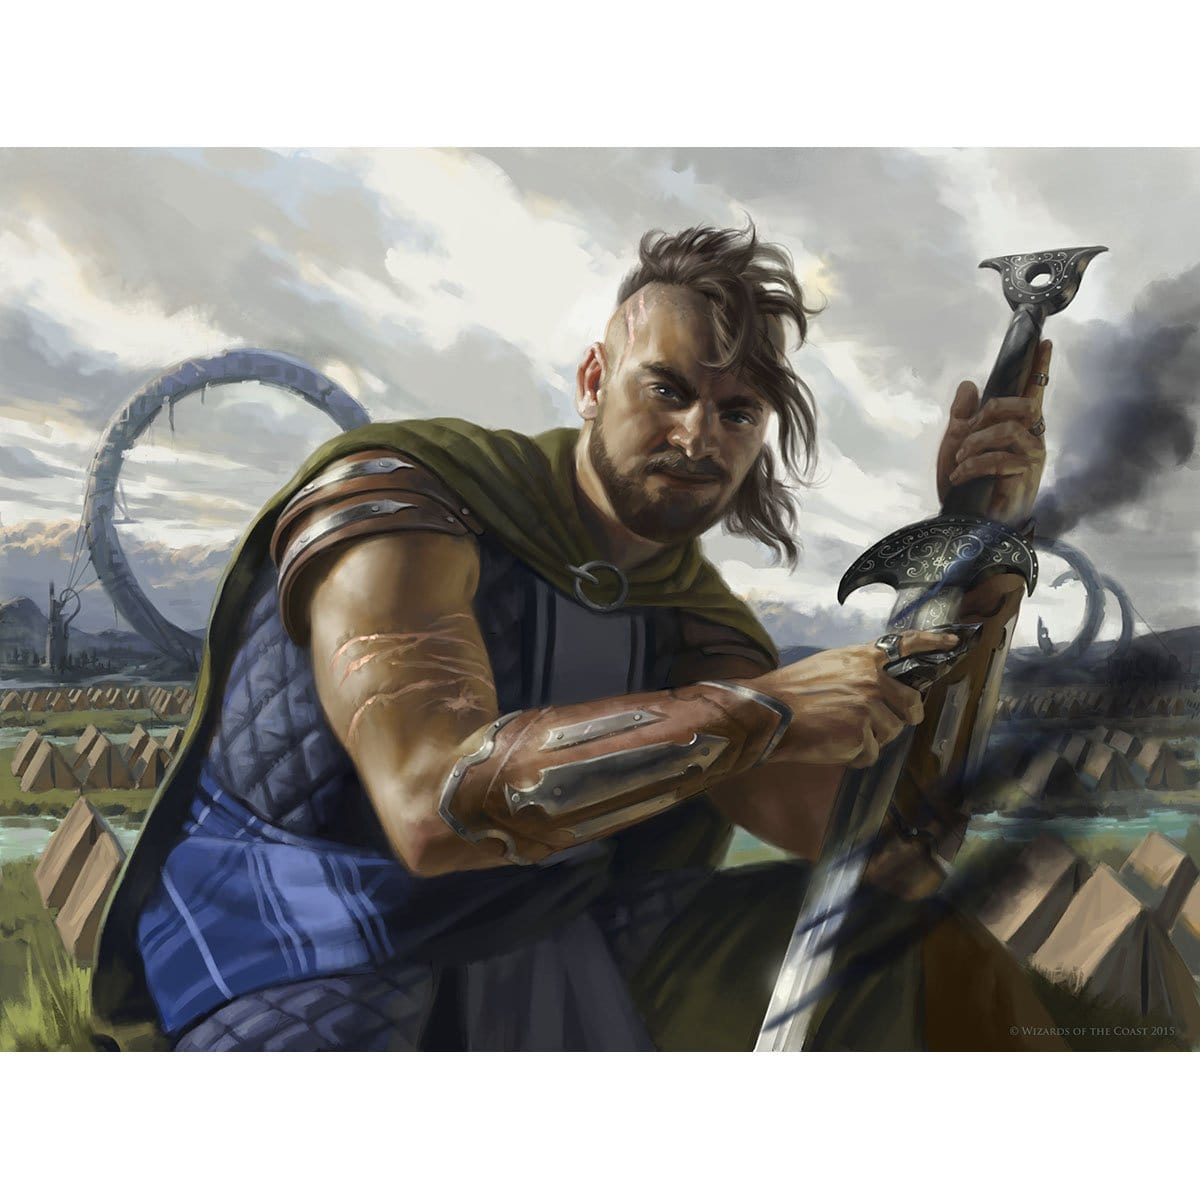 Graveblade Marauder Print - Print - Original Magic Art - Accessories for Magic the Gathering and other card games